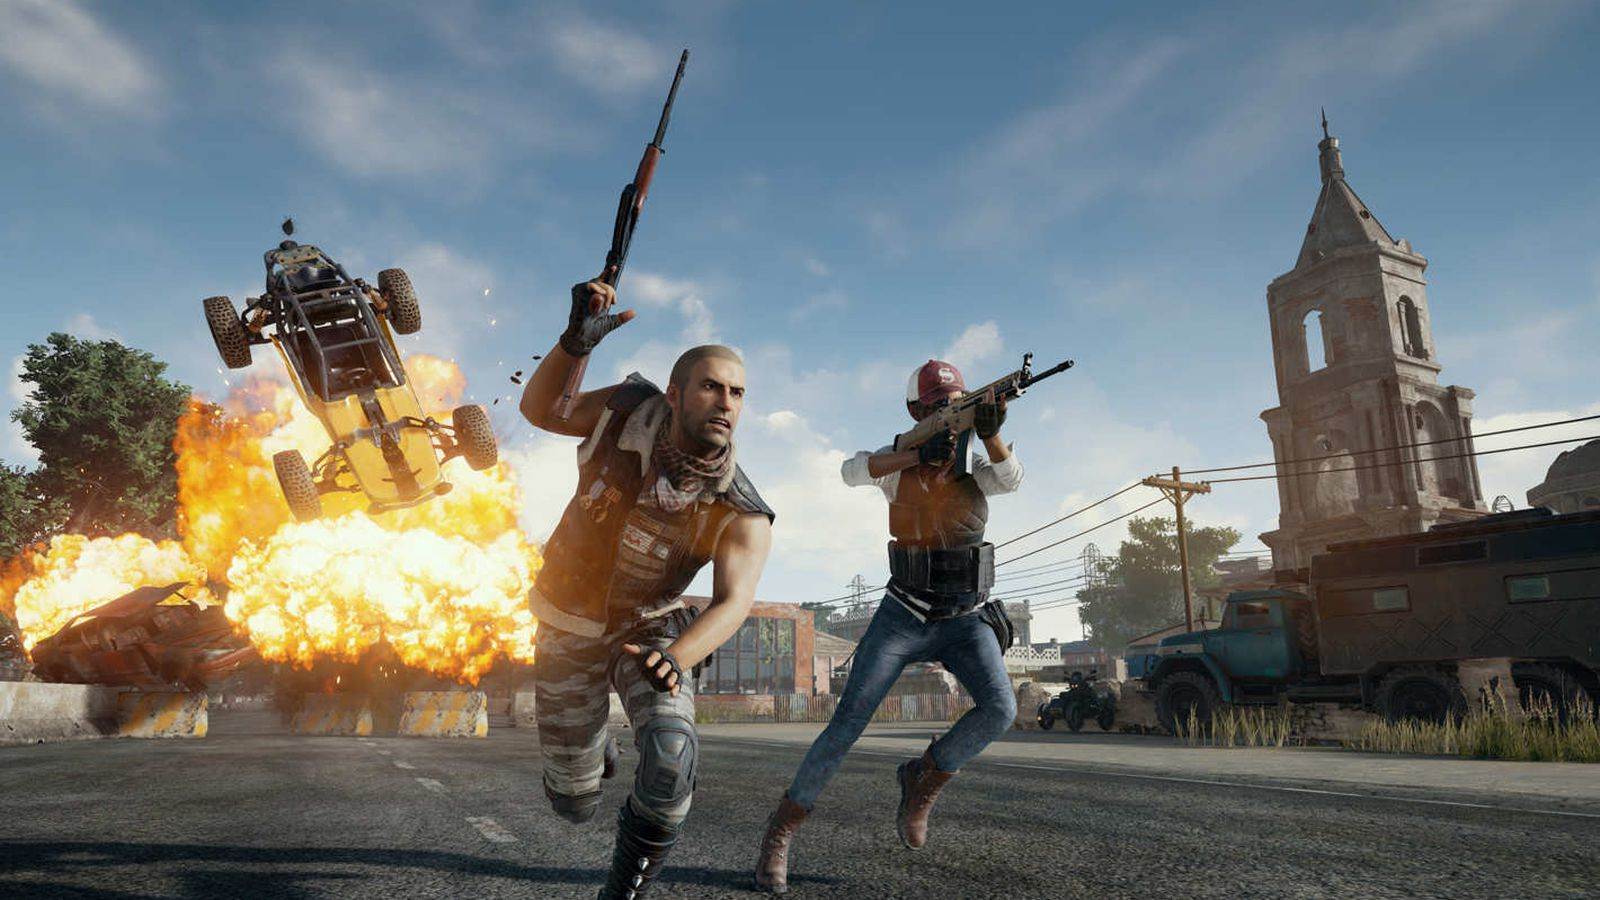 Pubg Mobile All The Details: Why I Love PlayerUnknown's Battlegrounds Despite Hating